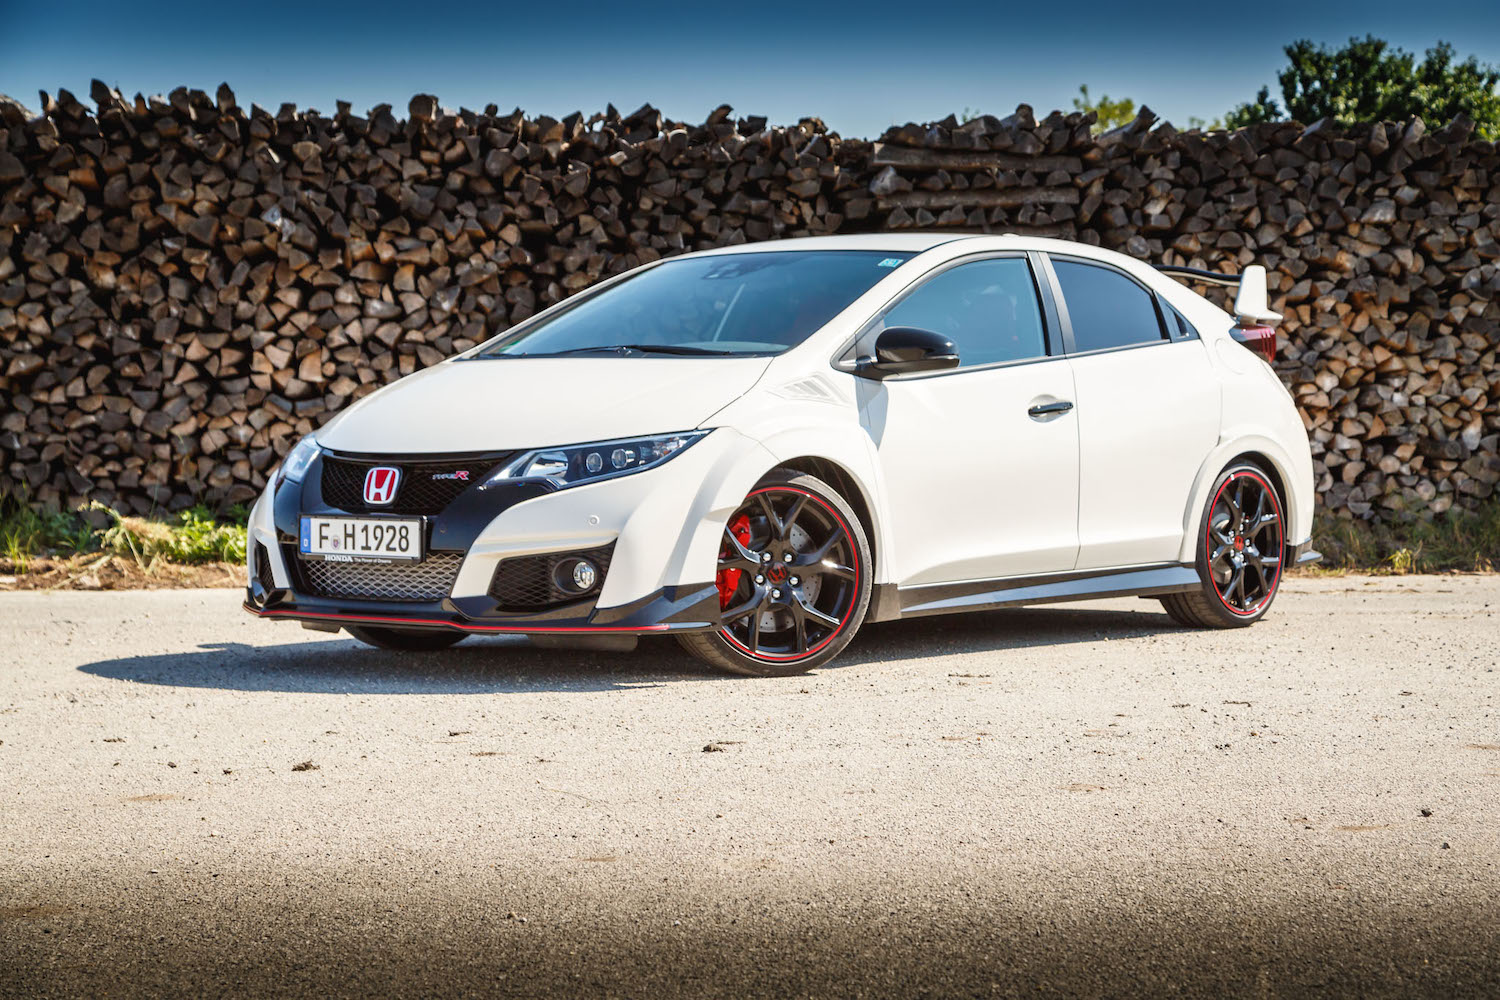 2015 Honda Civic Type R Press Launch Photographed by Motor Verso